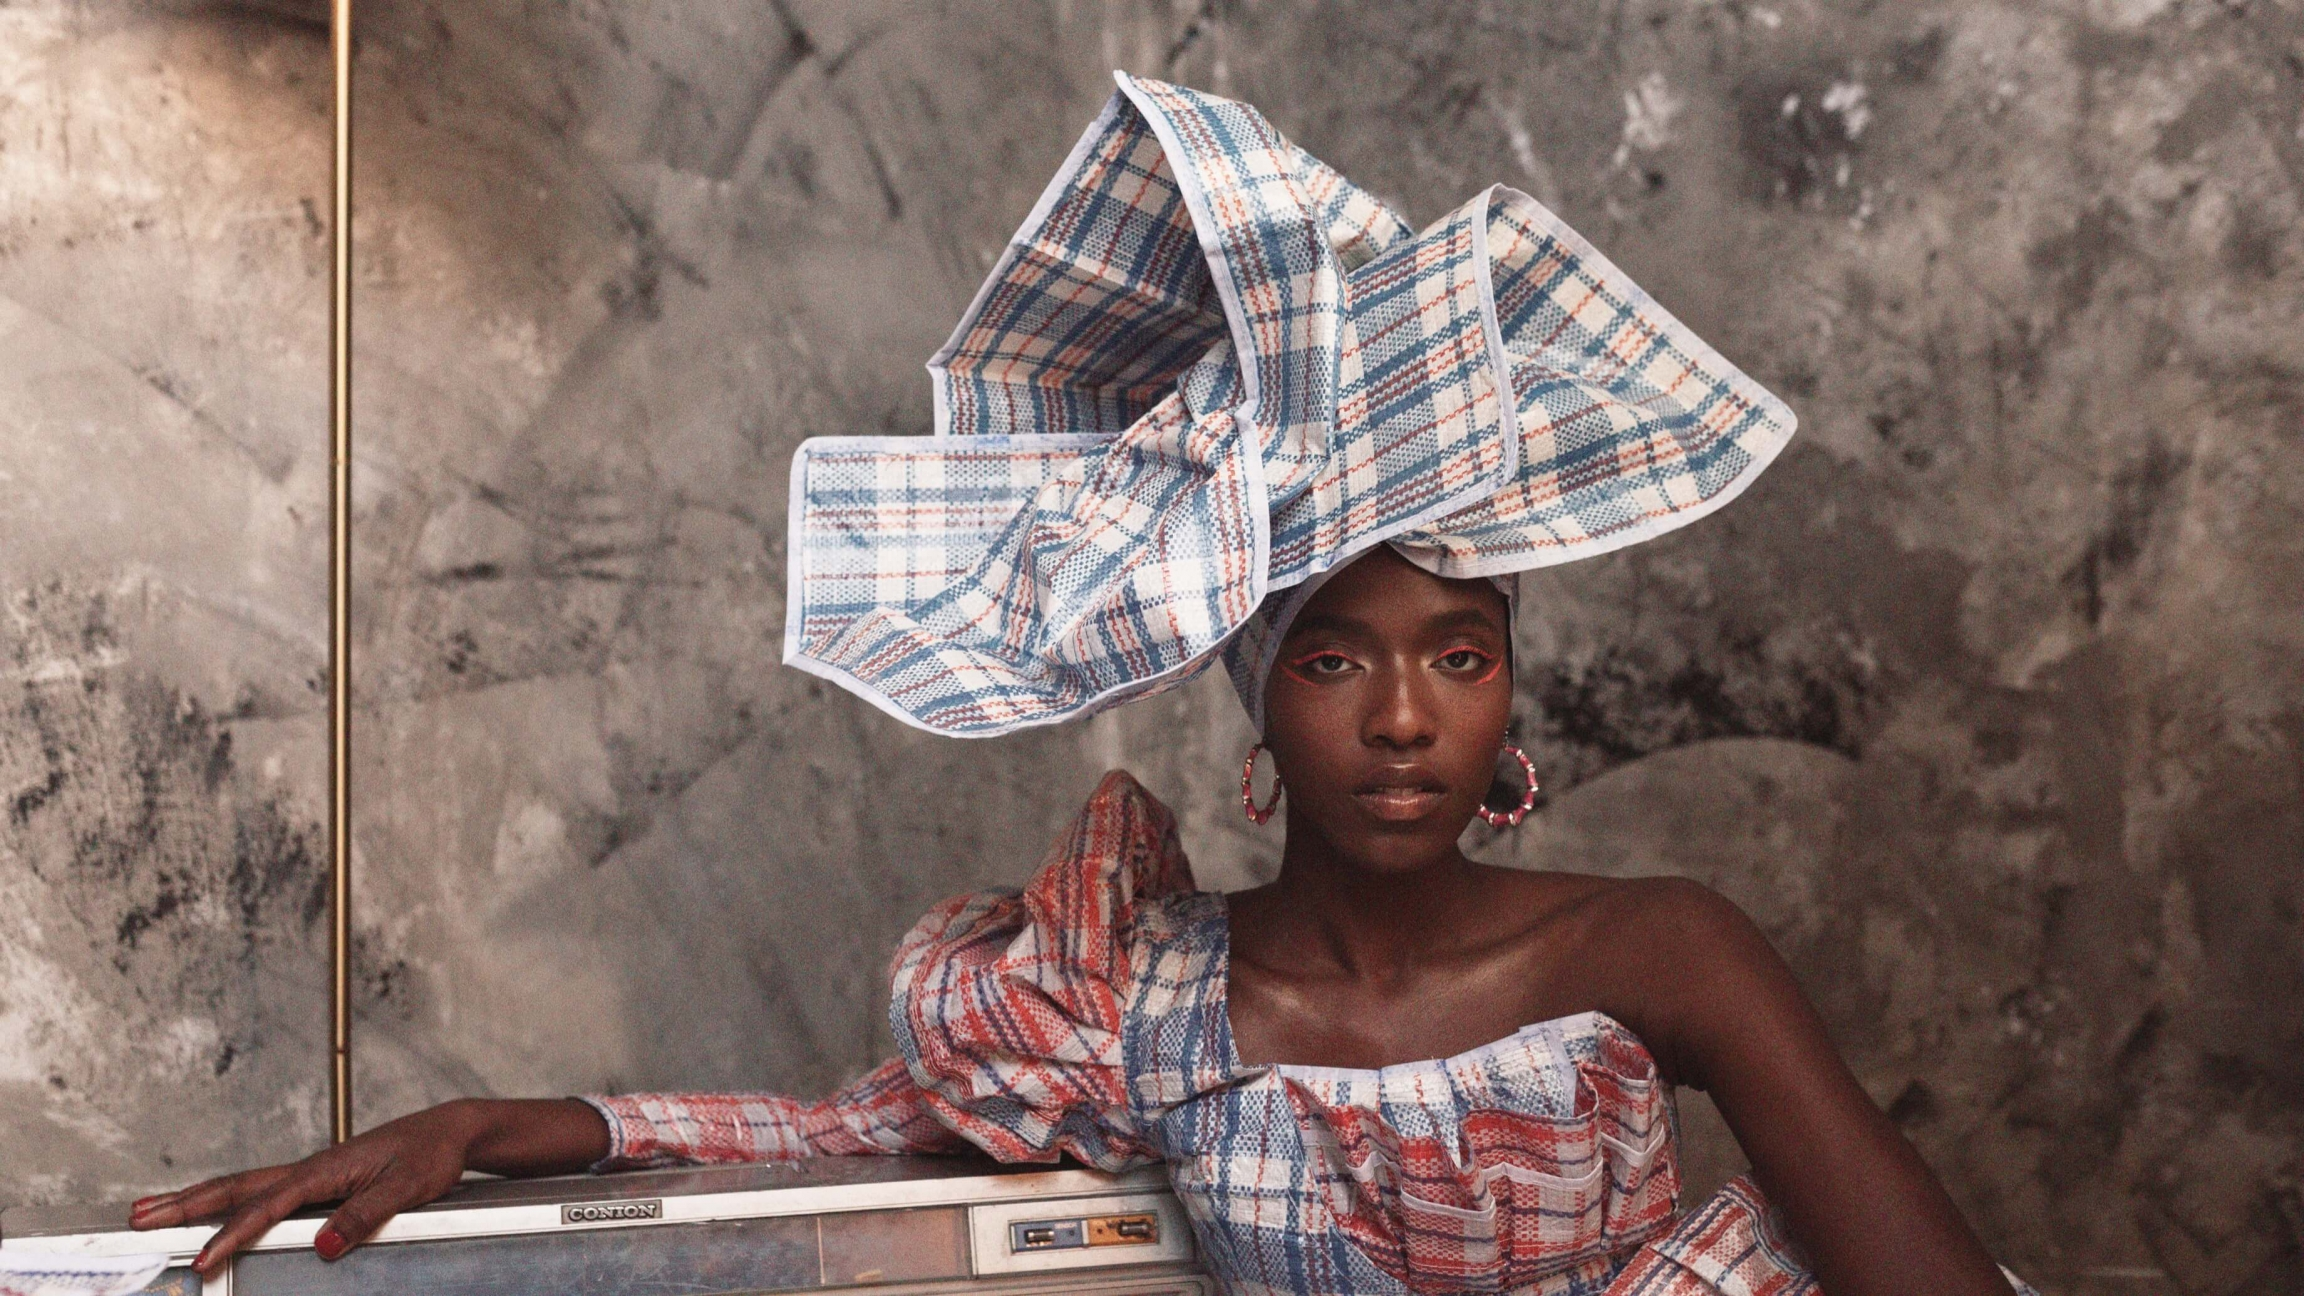 A woman wears a plaid head wrap and dress and poses near a transistor radio